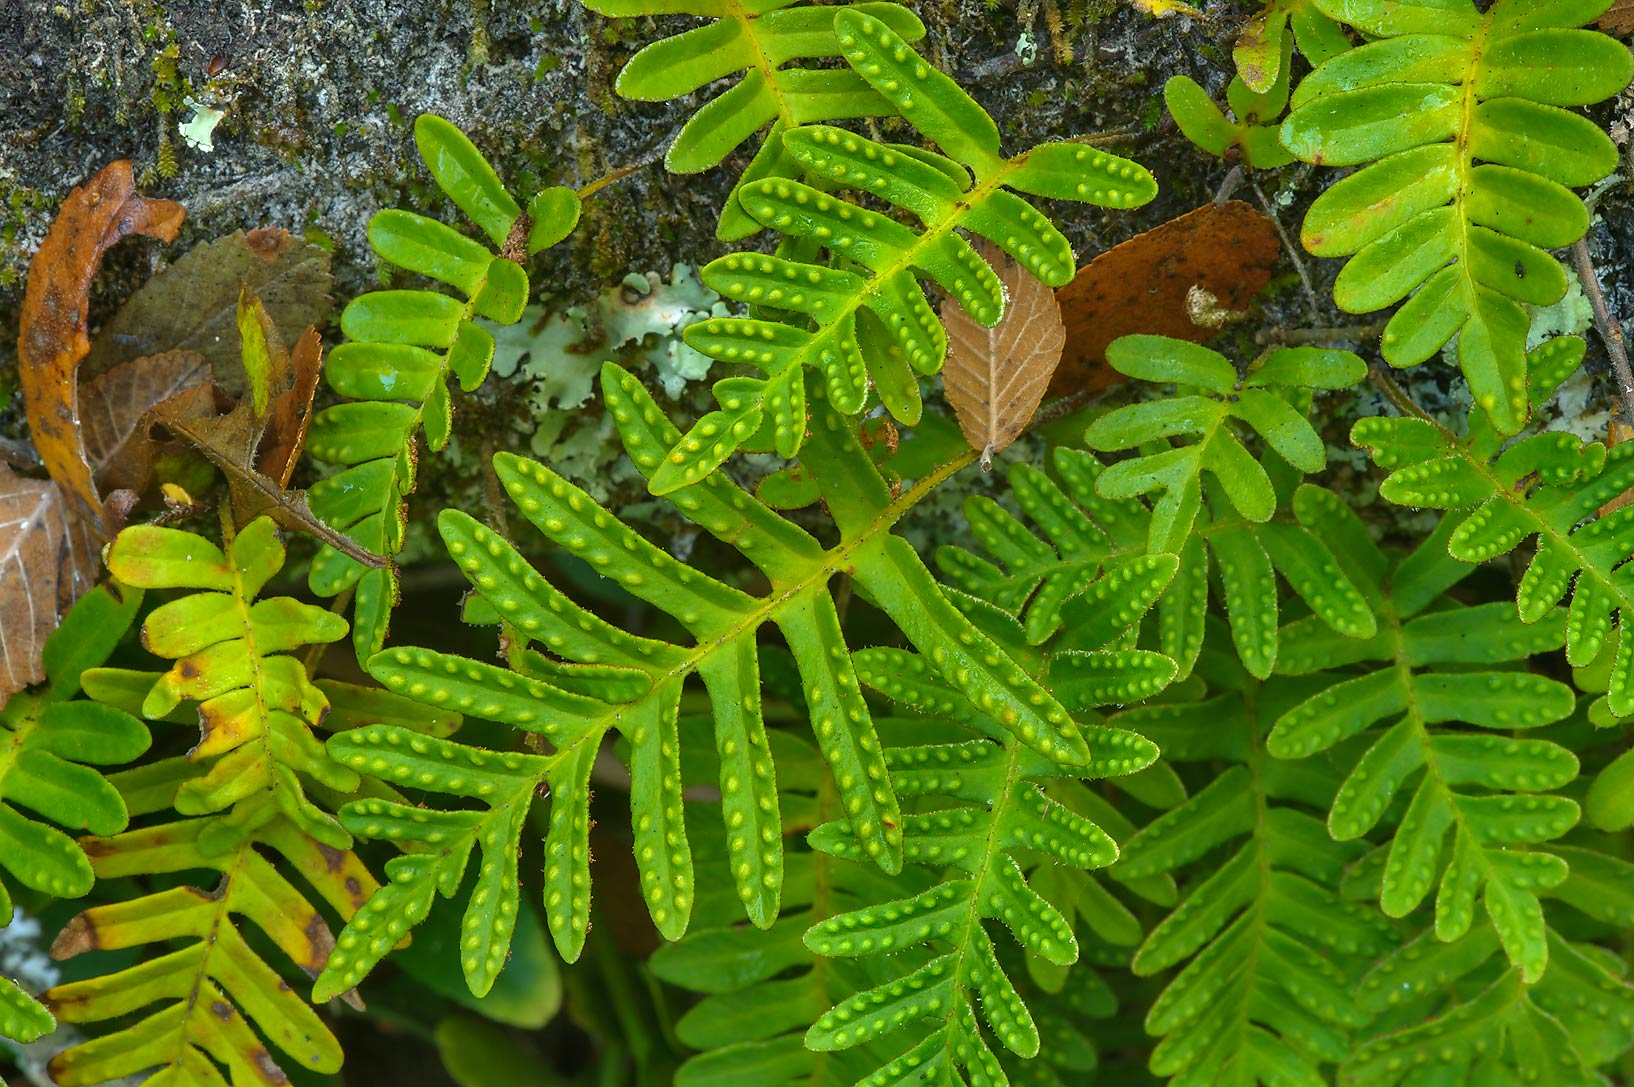 Resurrection fern (Pleopeltis polypodioides) on...National Forest near Huntsville, Texas